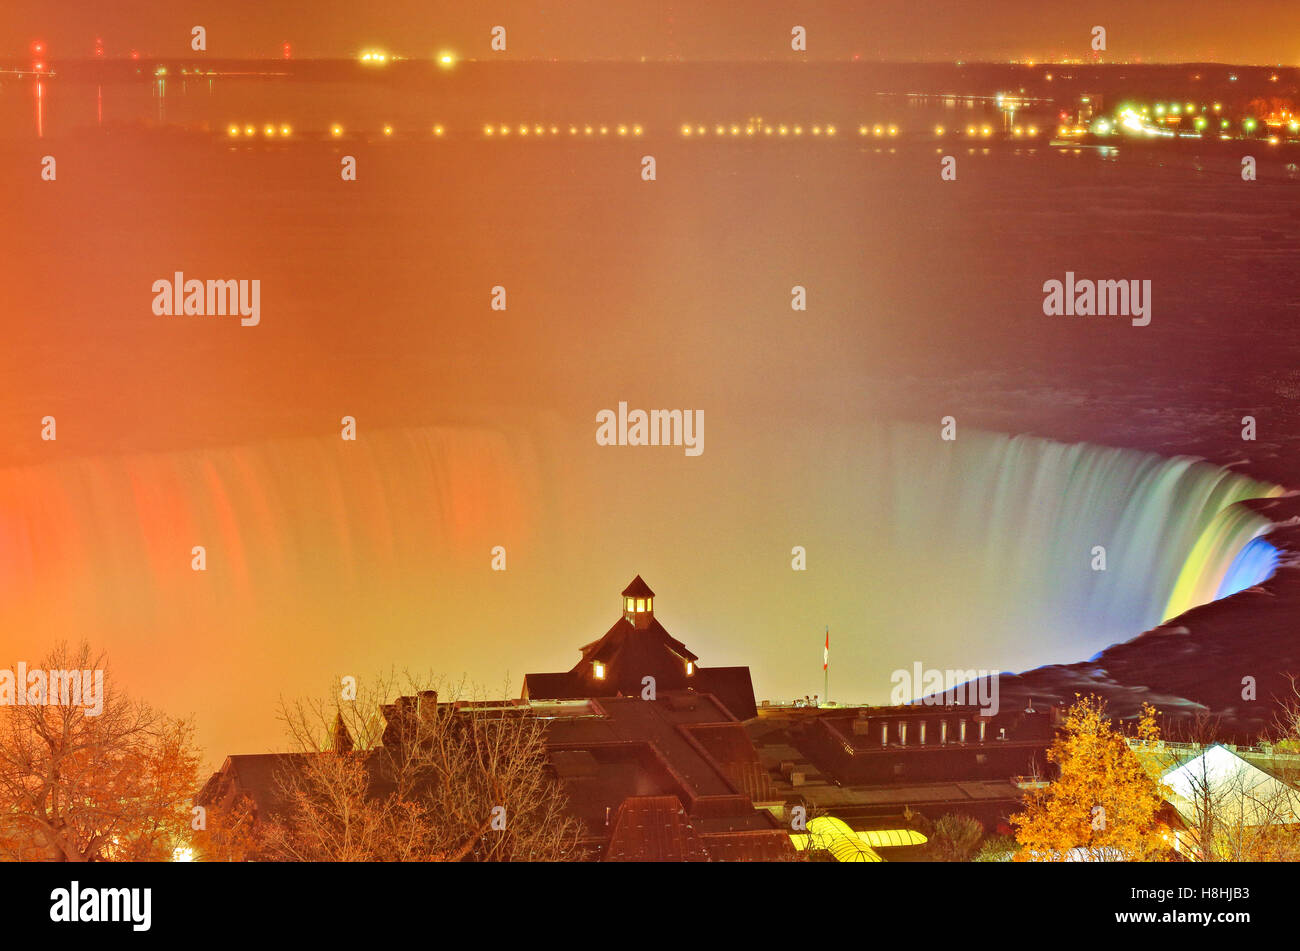 Aerial view of Niagara Falls Illumination light show of the grand Horseshoe Falls and Table Rock Welcome Centre - Stock Image